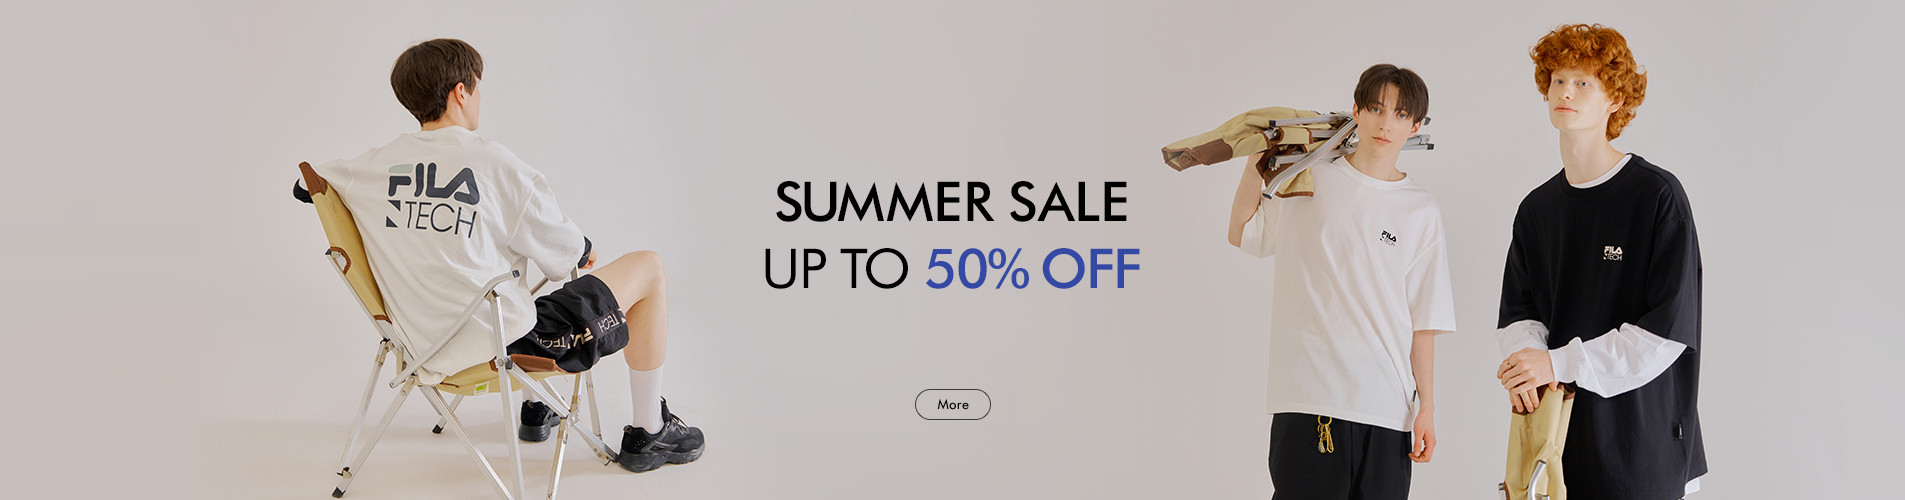 FILA SUMMER SALE<br> UP TO 50% OFF